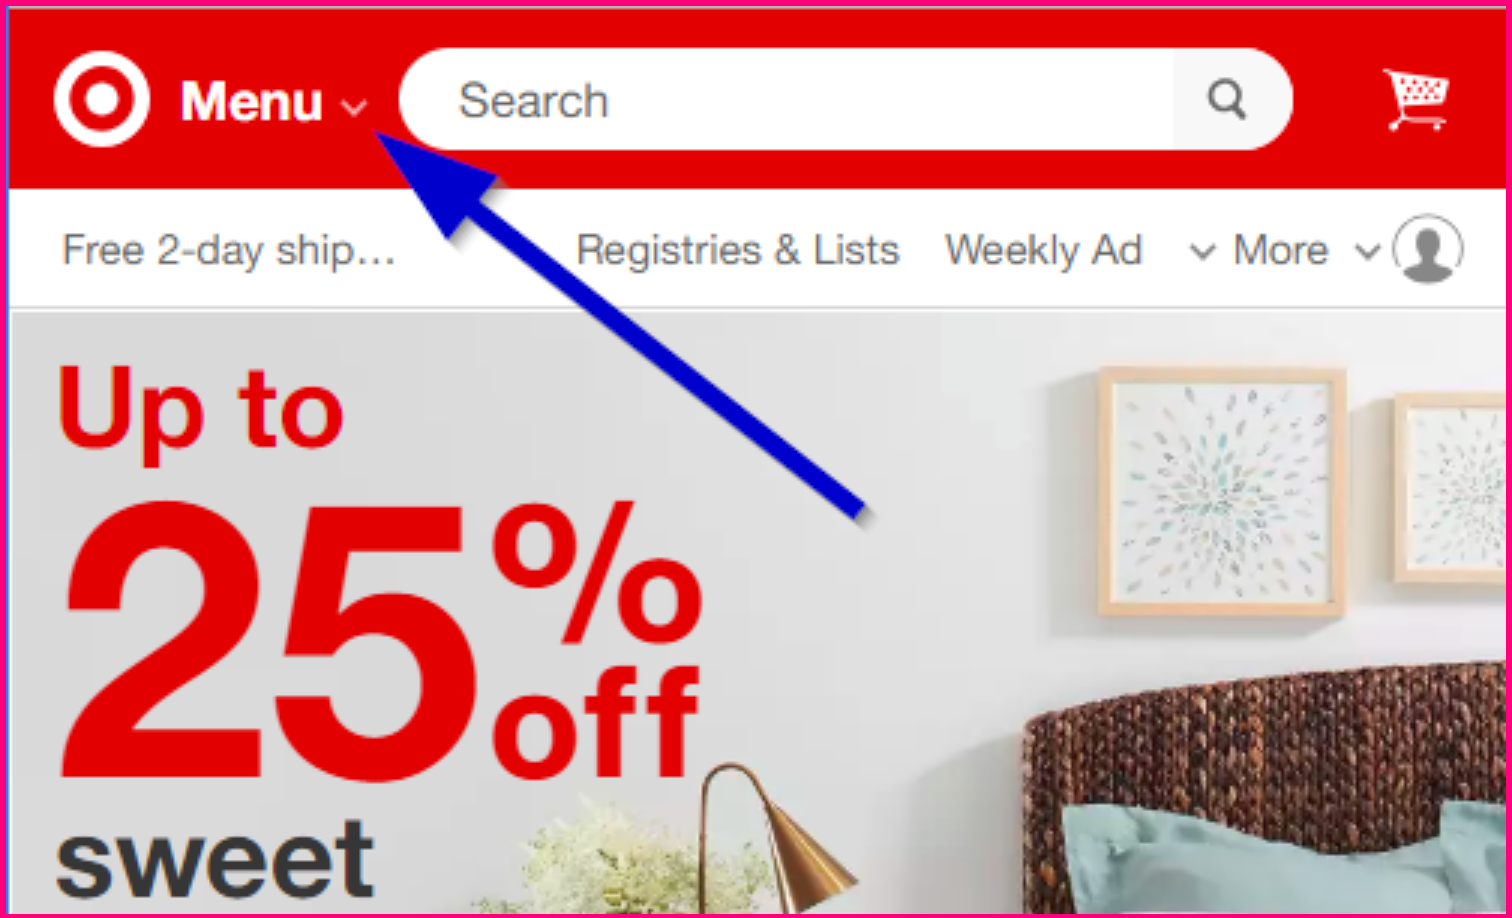 Screenshot showing how Target uses an arrow-click menu looks like on their website